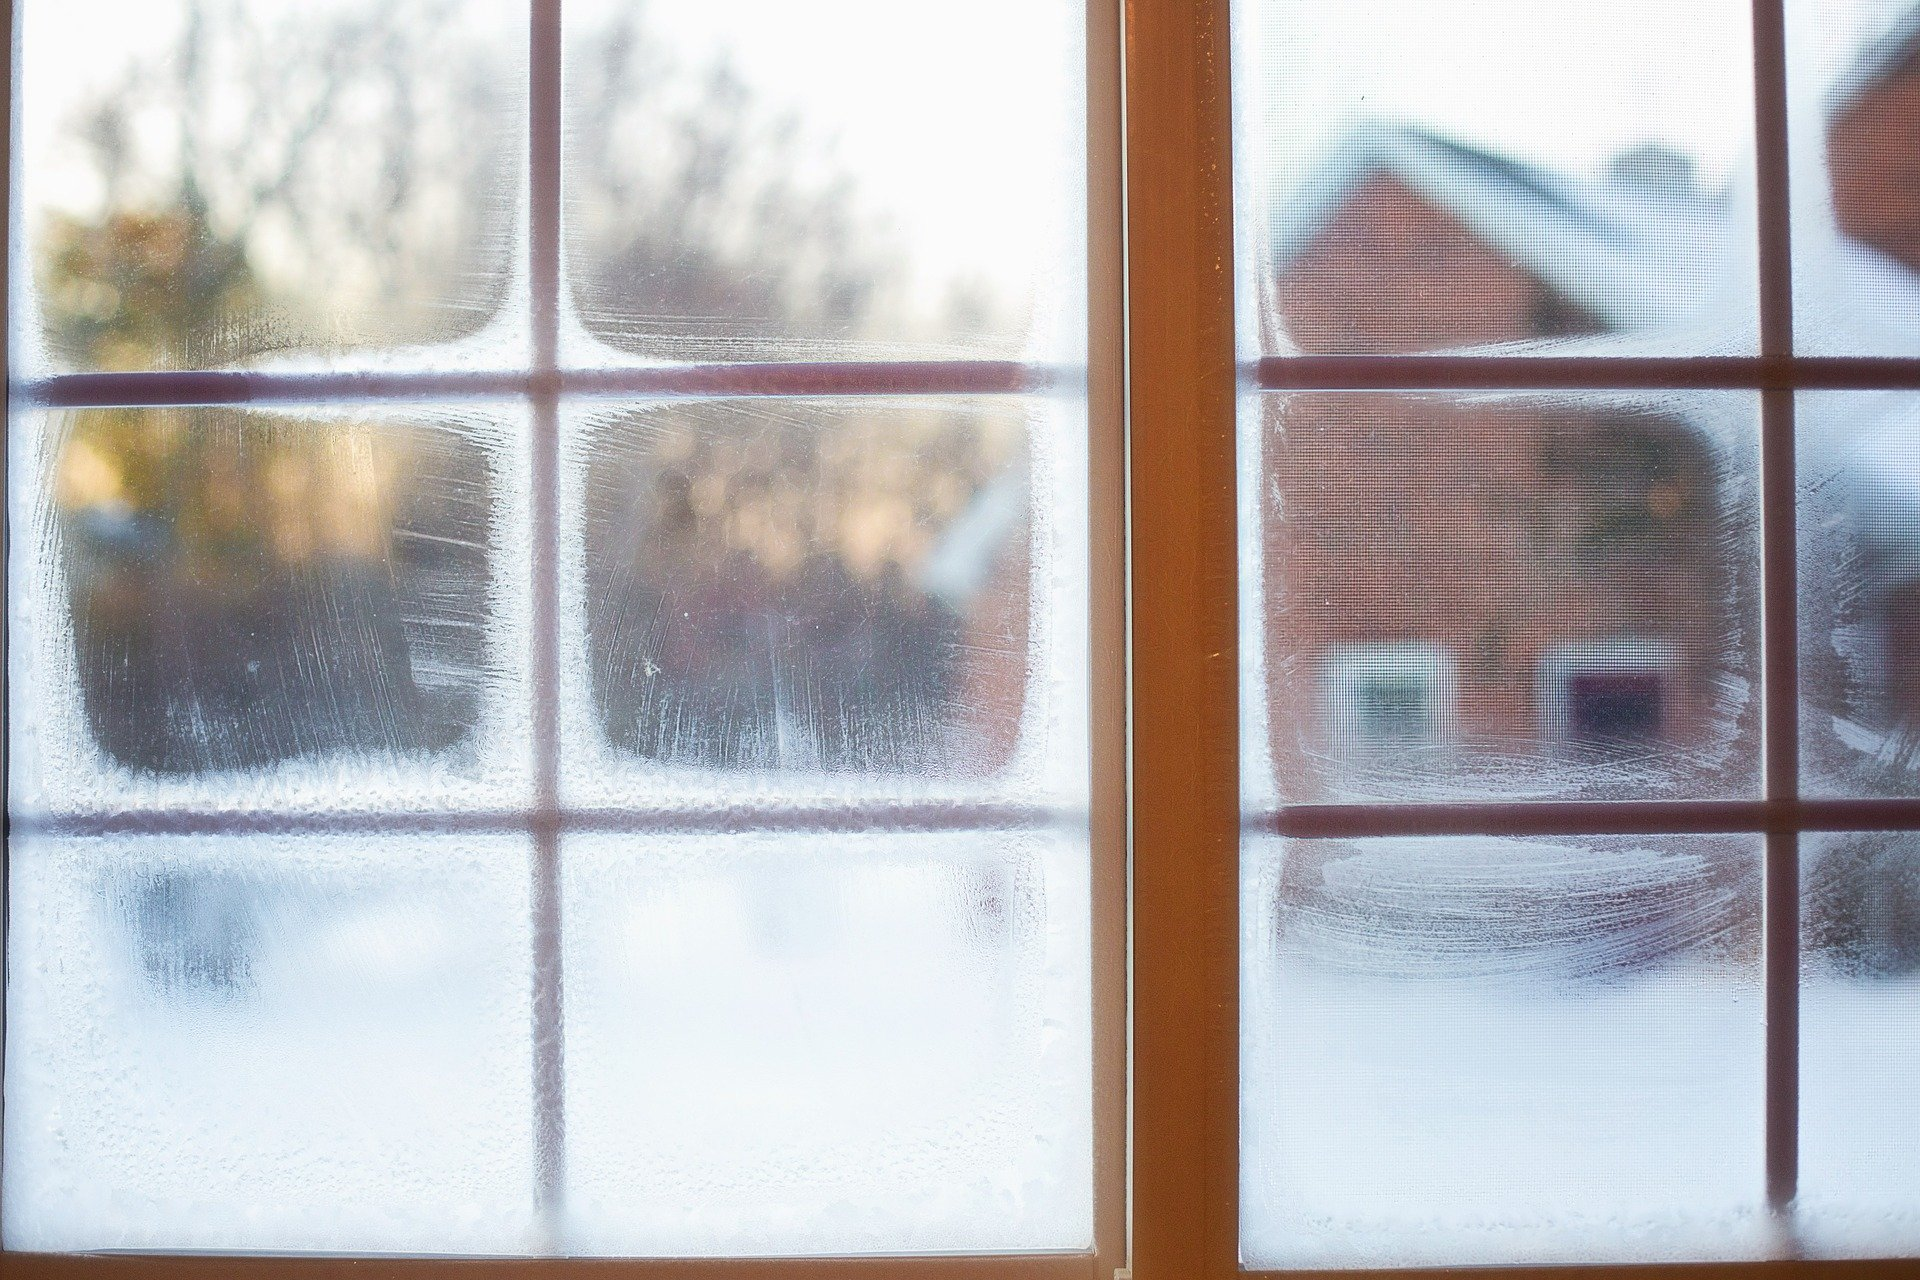 frost-on-window-637531_1920.jpg